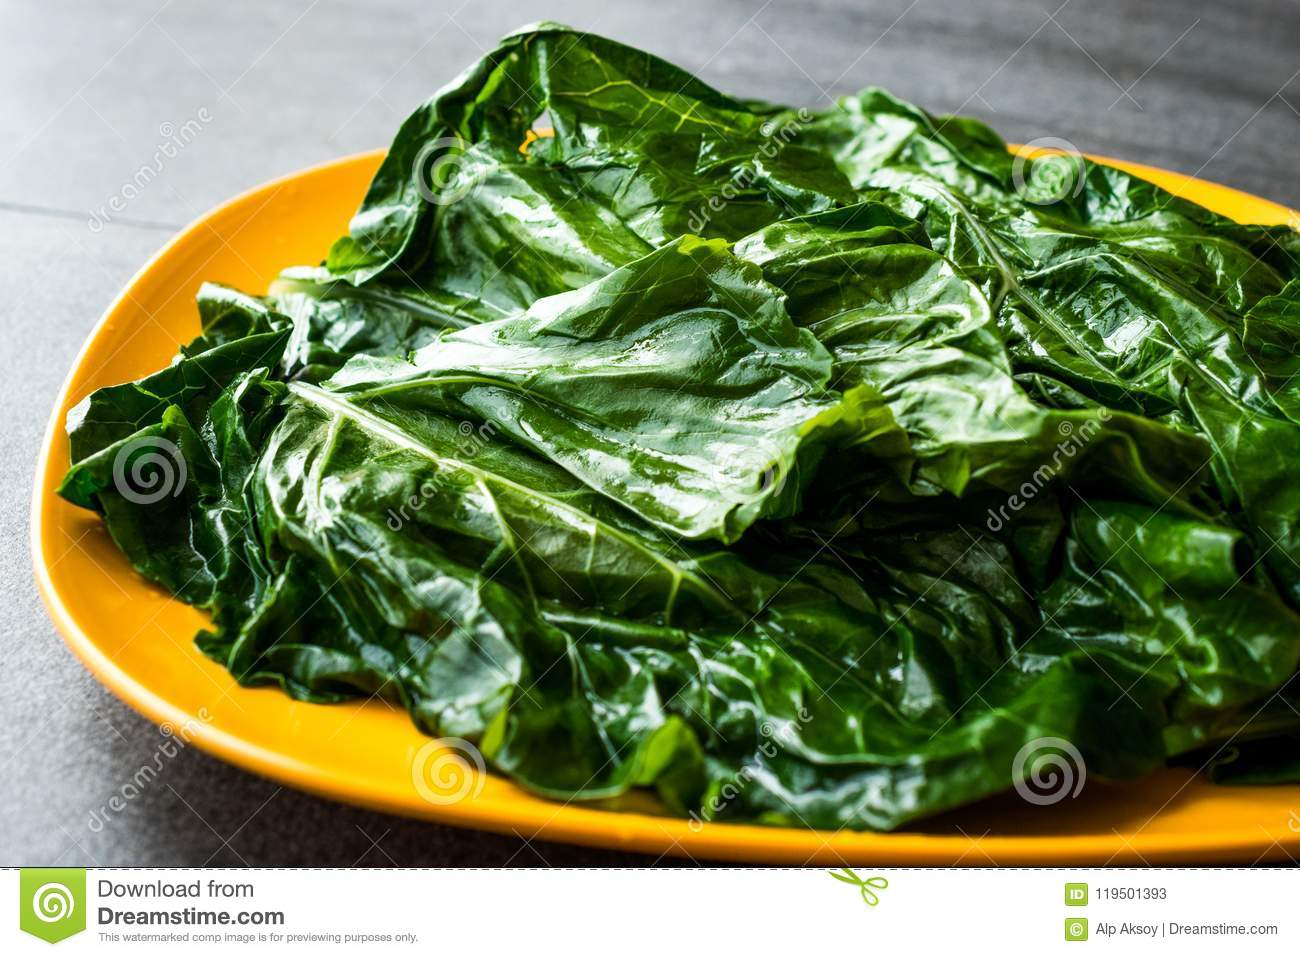 Black Cabbage Leaves / Organic Green Lacinato Kale on Yellow Plate with Grey Granit Surface